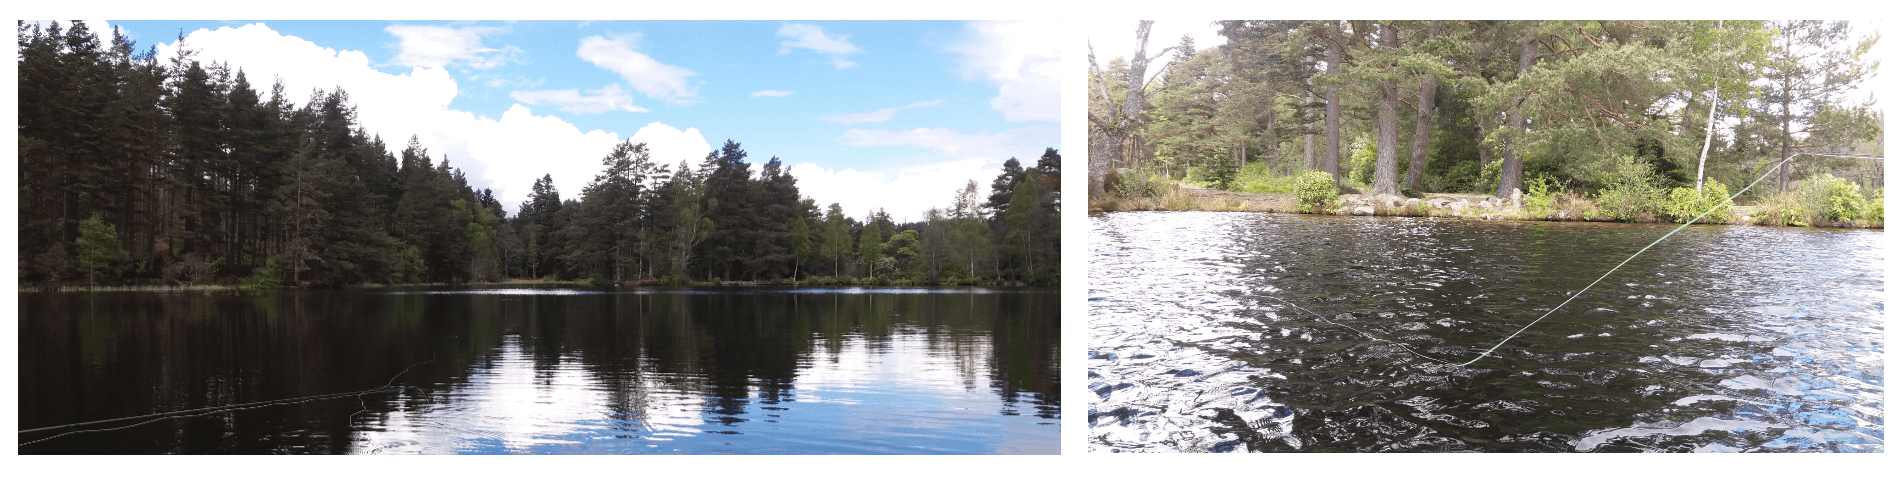 trout fihsing in the scottish highlands 5